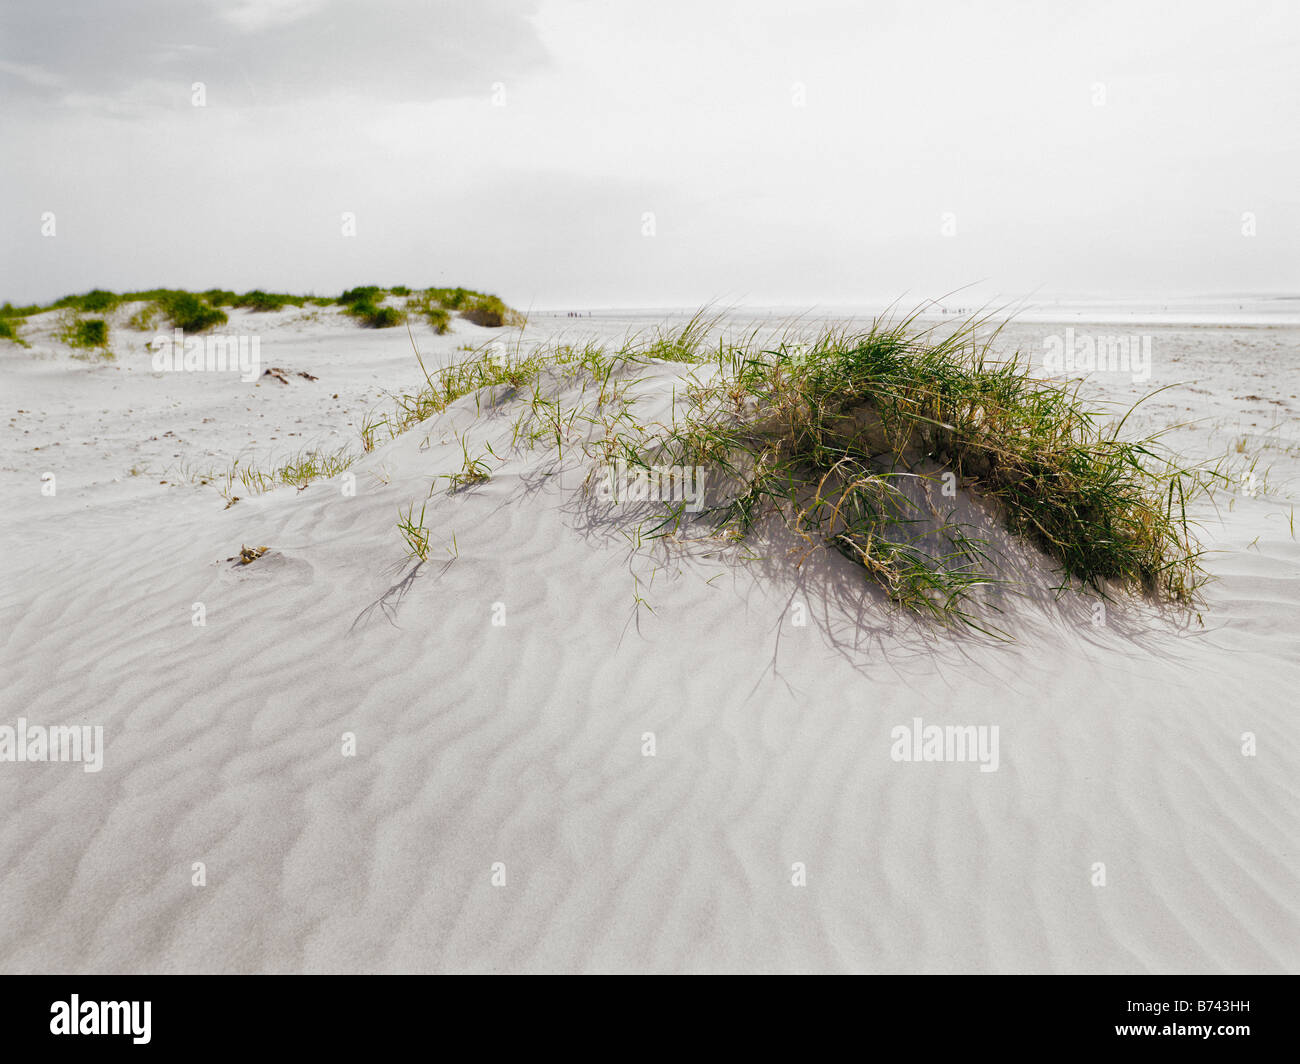 Sand dunes on beach with tufts of seagrass - Stock Image